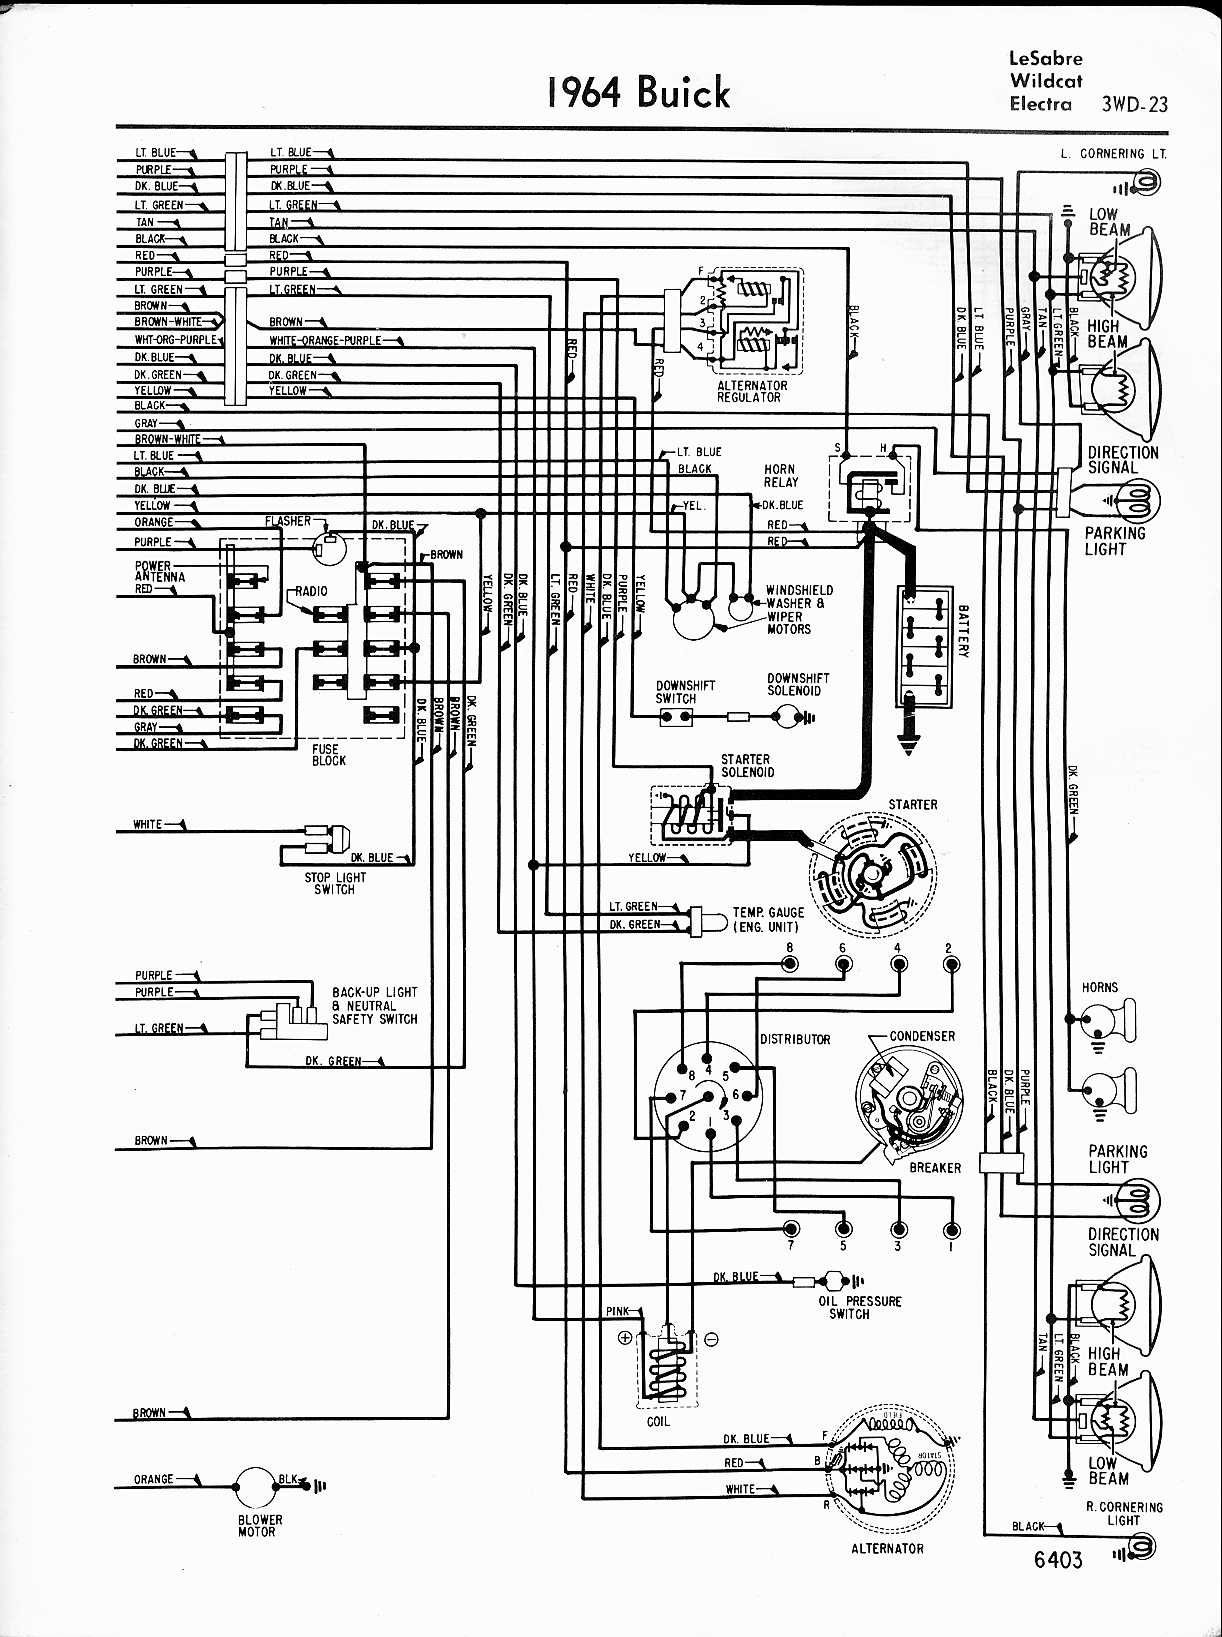 1995 lesabre wiring diagram - fusebox and wiring diagram wires-pit - wires -pit.sirtarghe.it  diagram database - sirtarghe